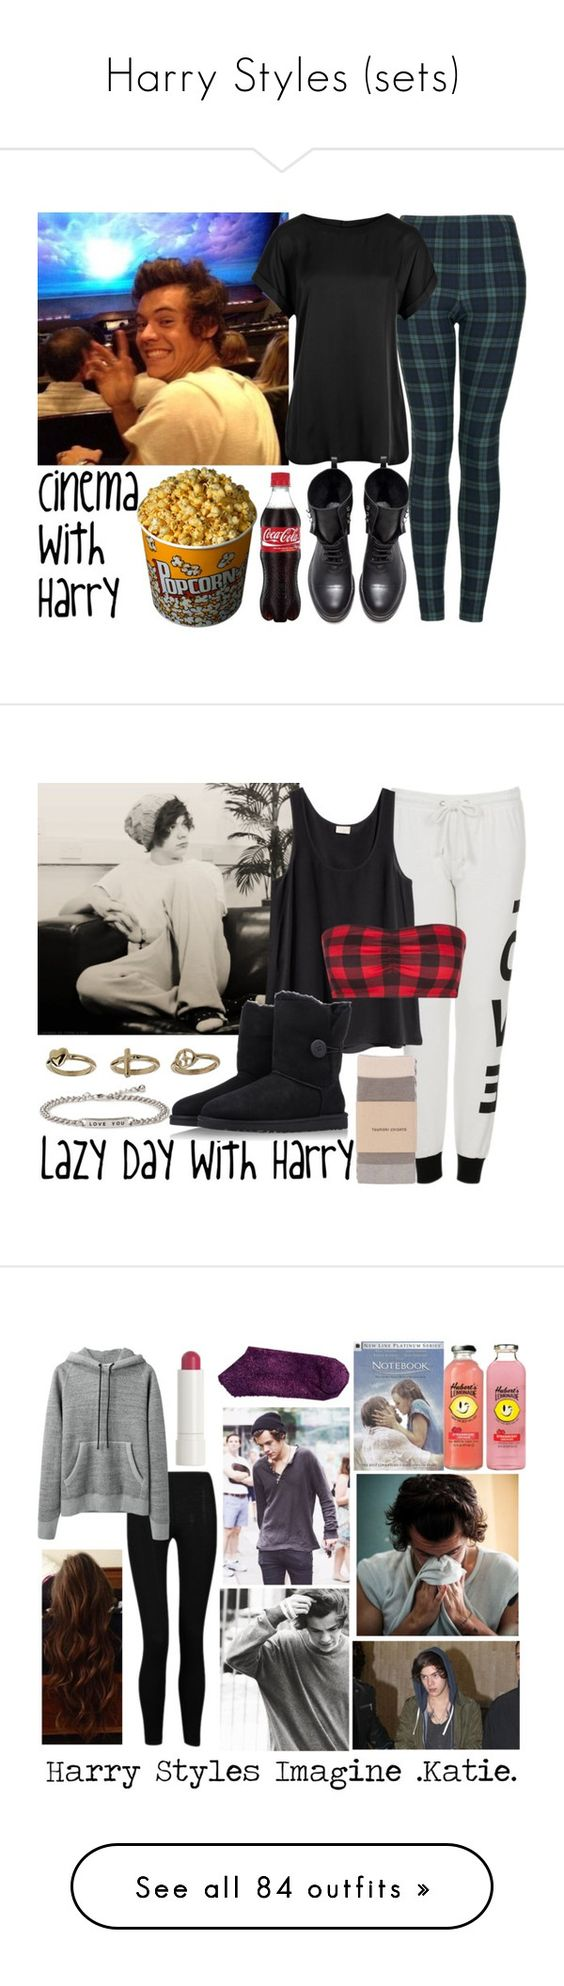 """""""Harry Styles (sets)"""" by once-upon-a-star ❤ liked on Polyvore featuring Topshop, Reiss, Zara, OneDirection, harrystyles, Harry, onedirectionoutfits, H&M, Tsumori Chisato and UGG Australia"""